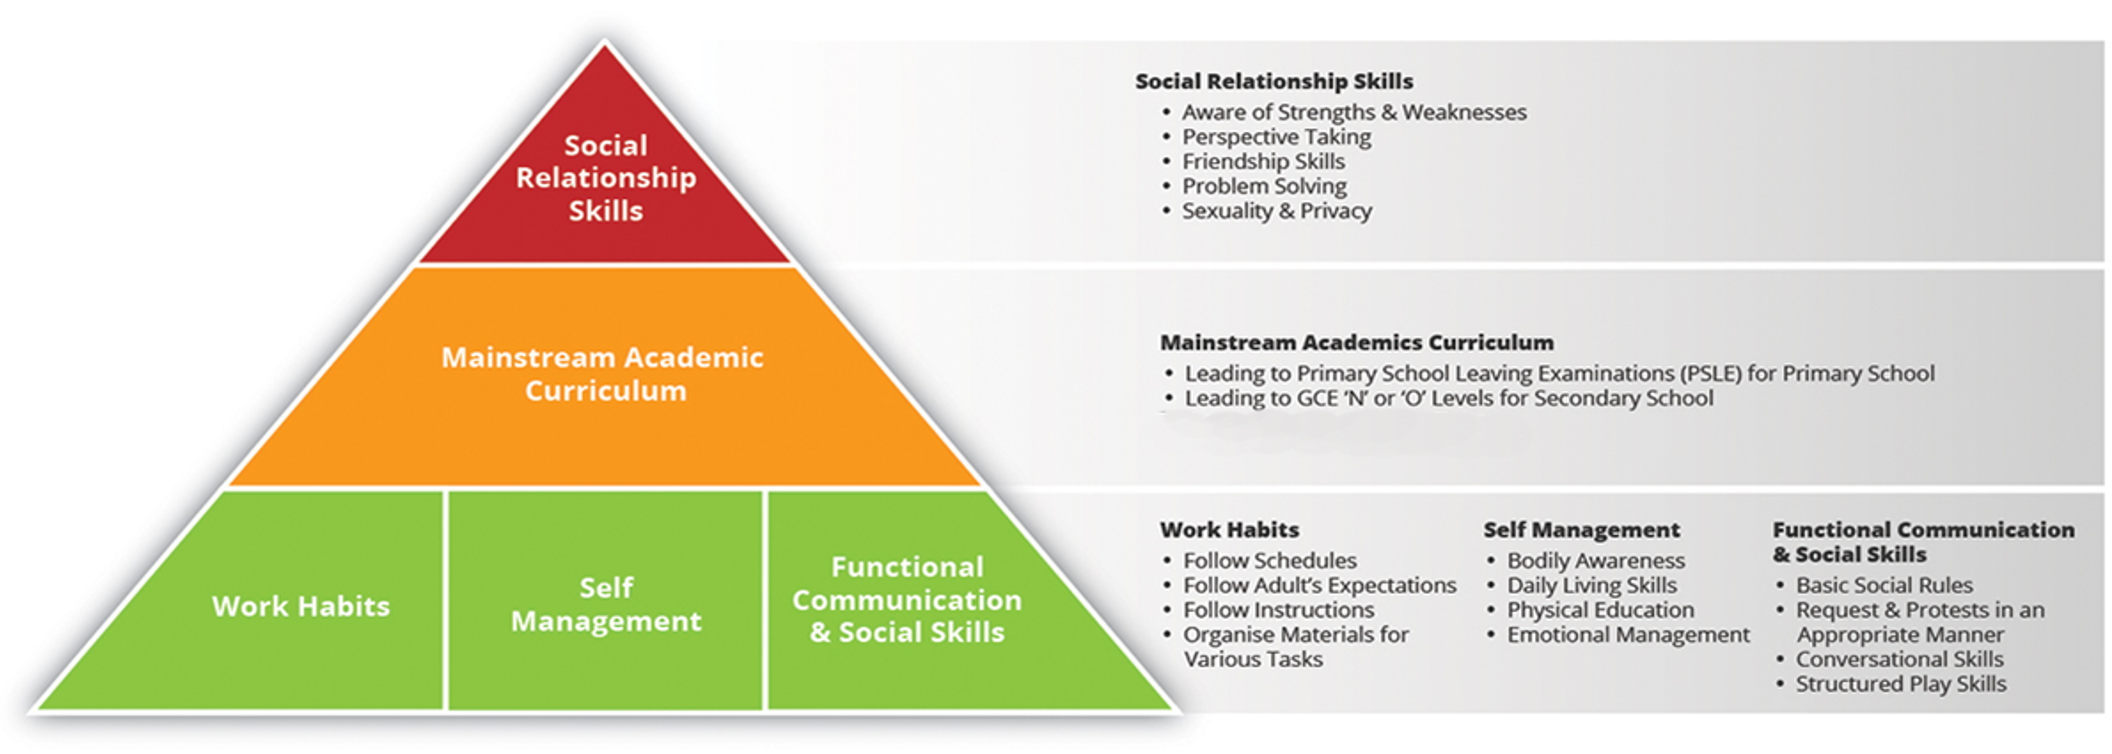 Curriculum Framework for Primary & Secondary Students